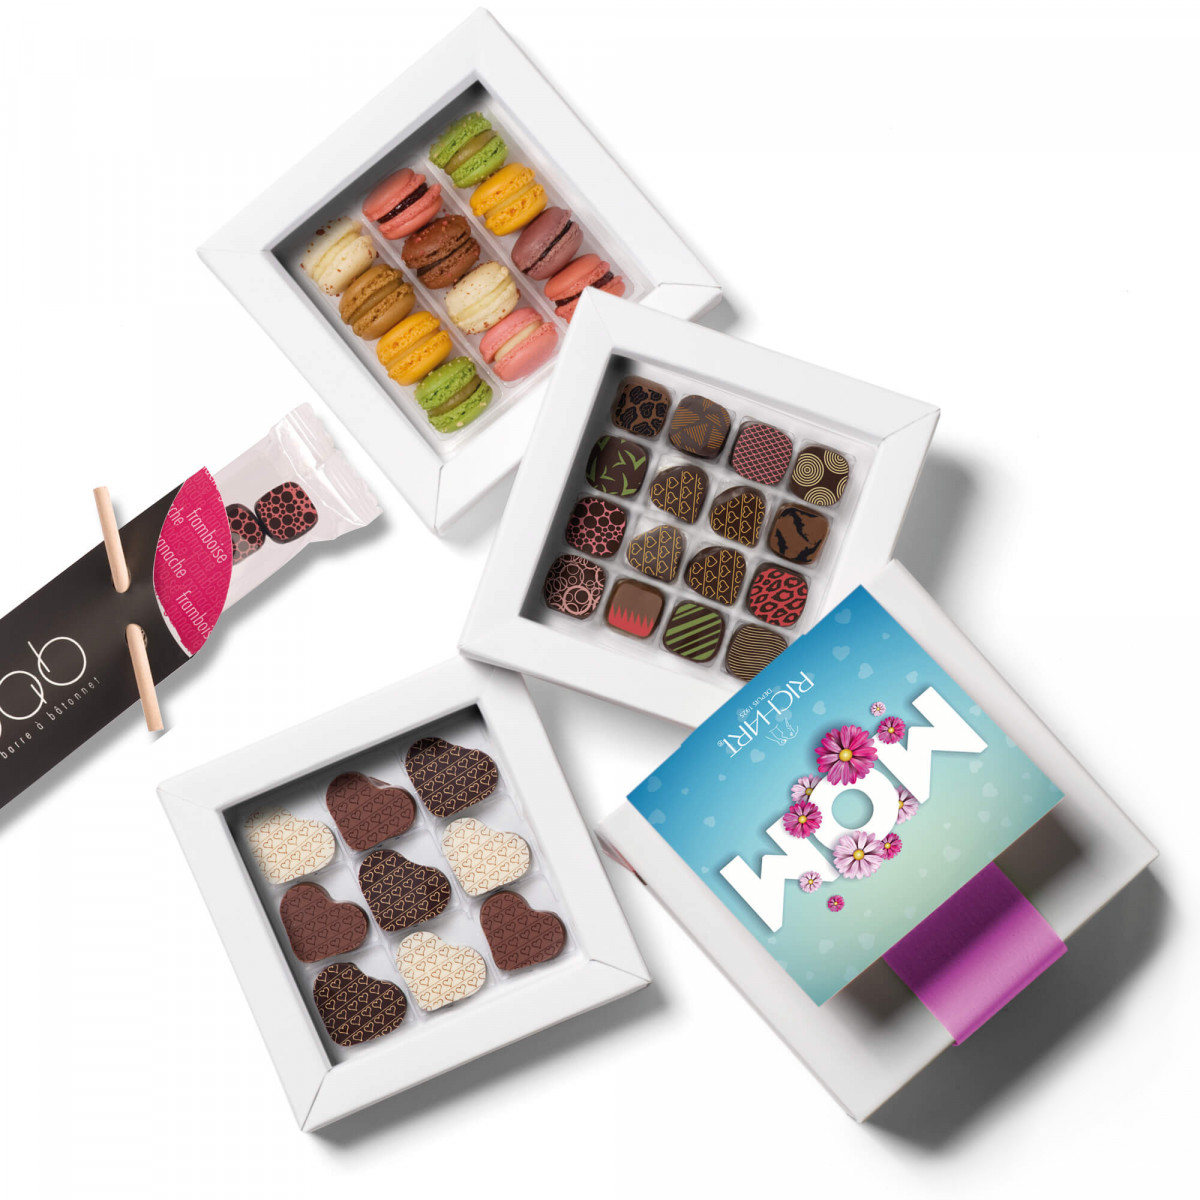 Happy Mothers Day chocolate macarons and pates de fruits by Maison RICHART